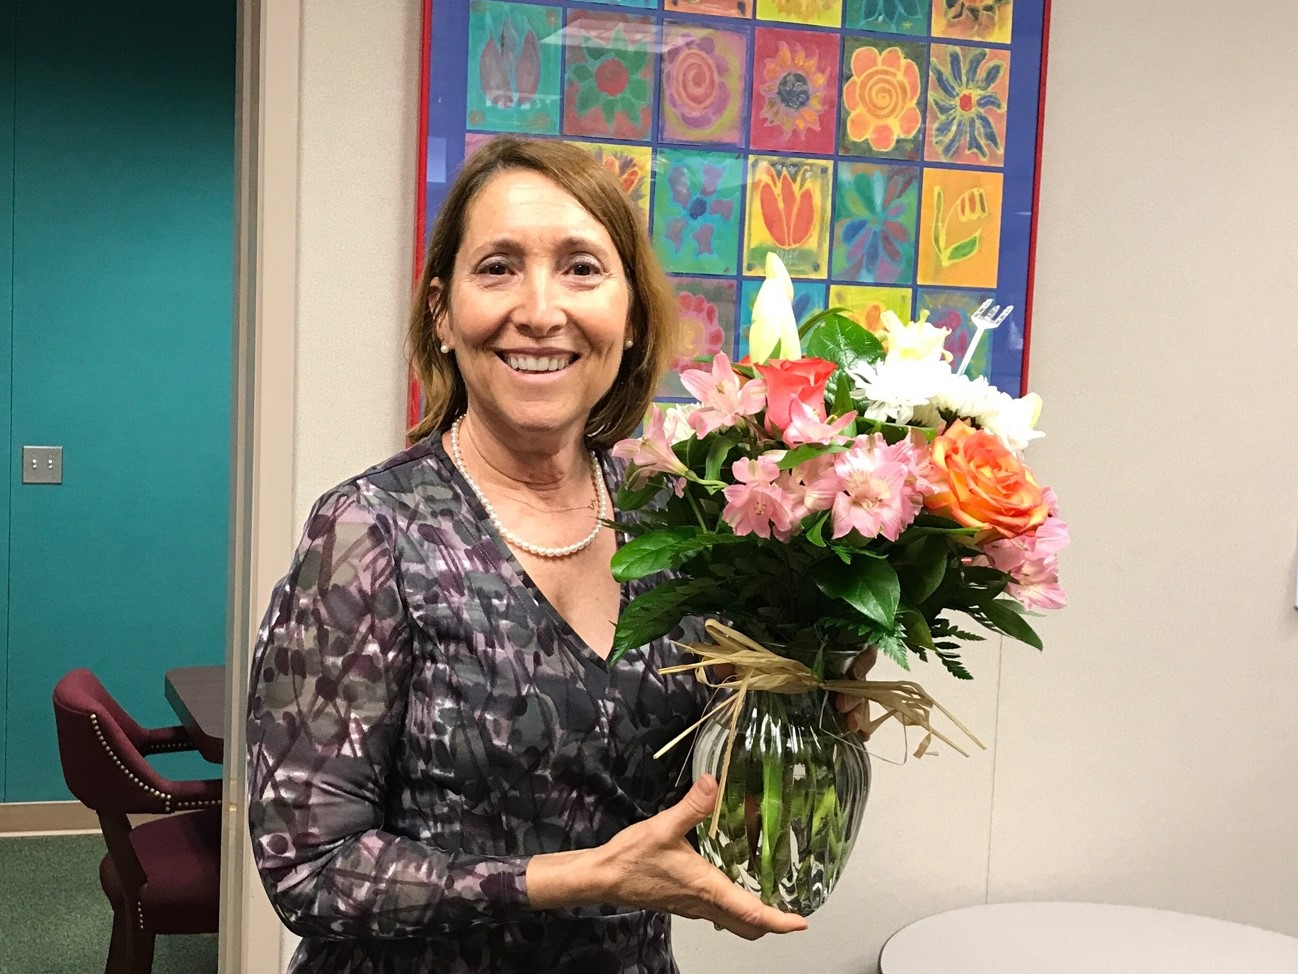 Tracy Barquer, Principal of the Year for Orange County